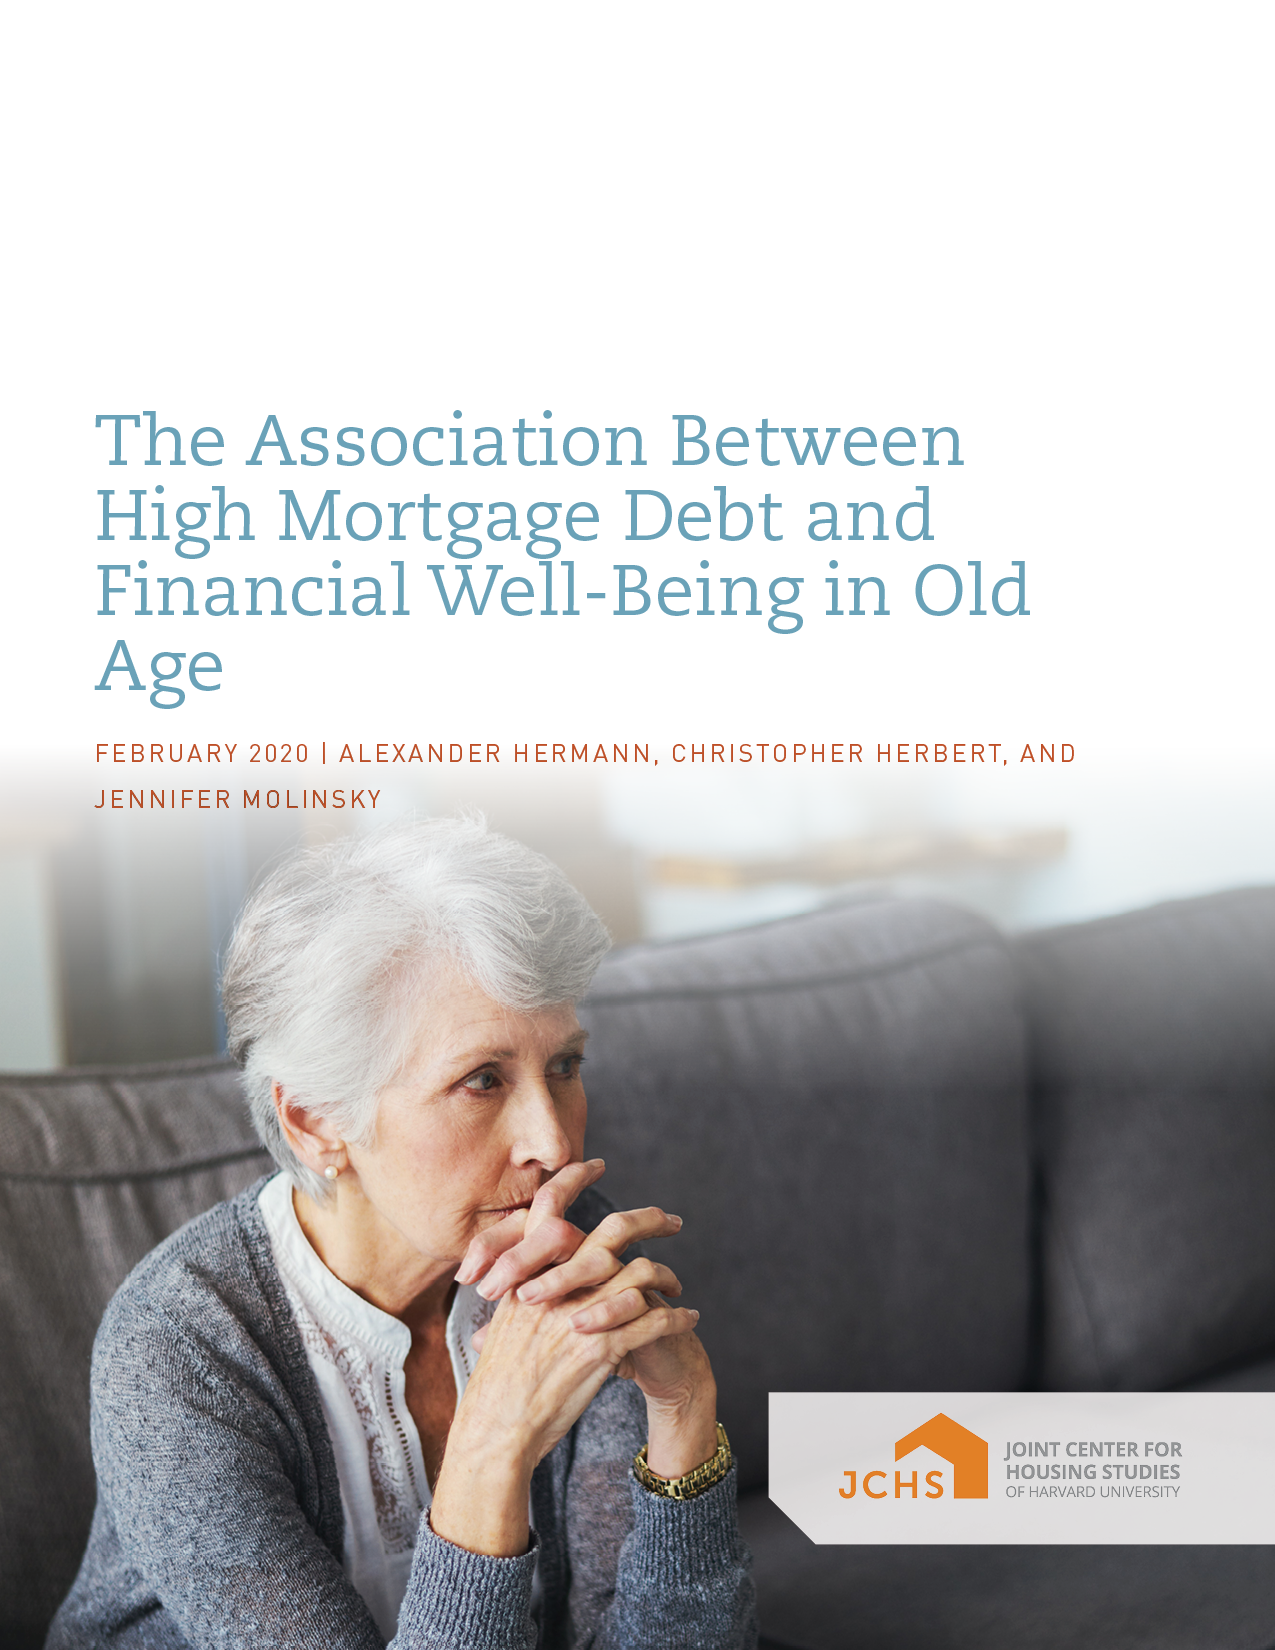 The Association Between High Mortgage Debt and Financial Well-Being in Old Age: Implications for the Financial Education Field